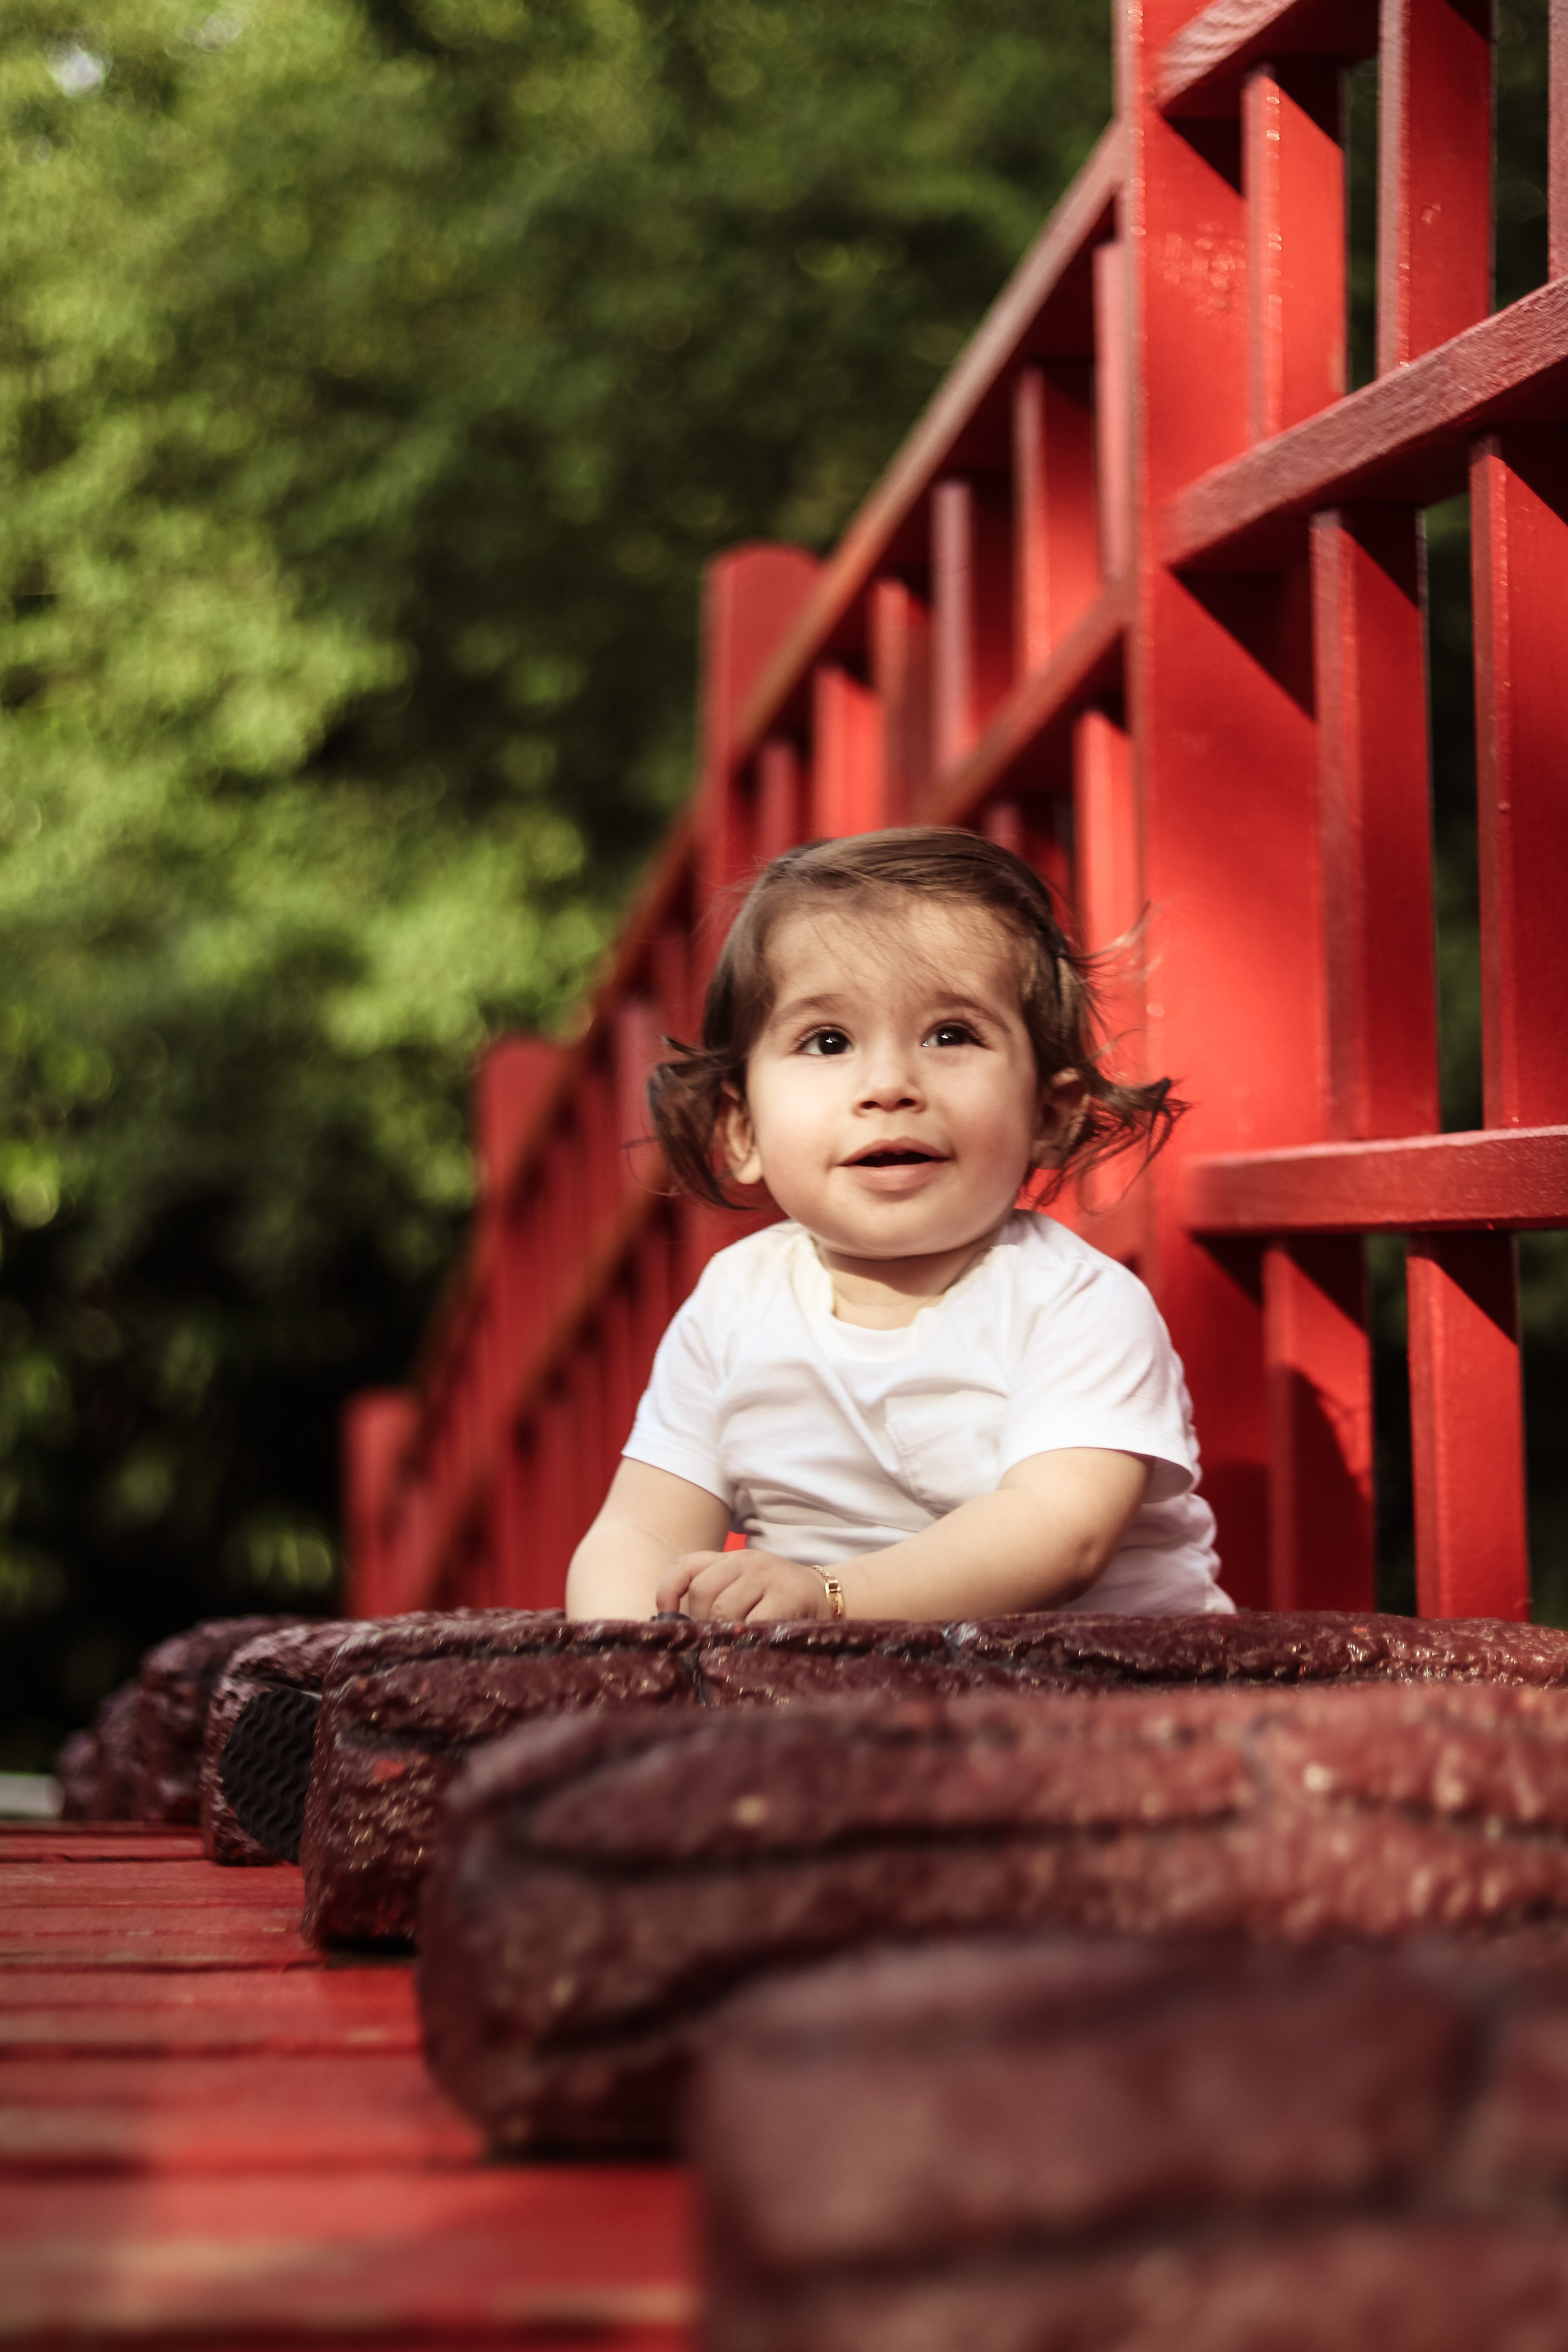 Baby Wearing White Crew-neck Shirt Beside Red Wooden Fence